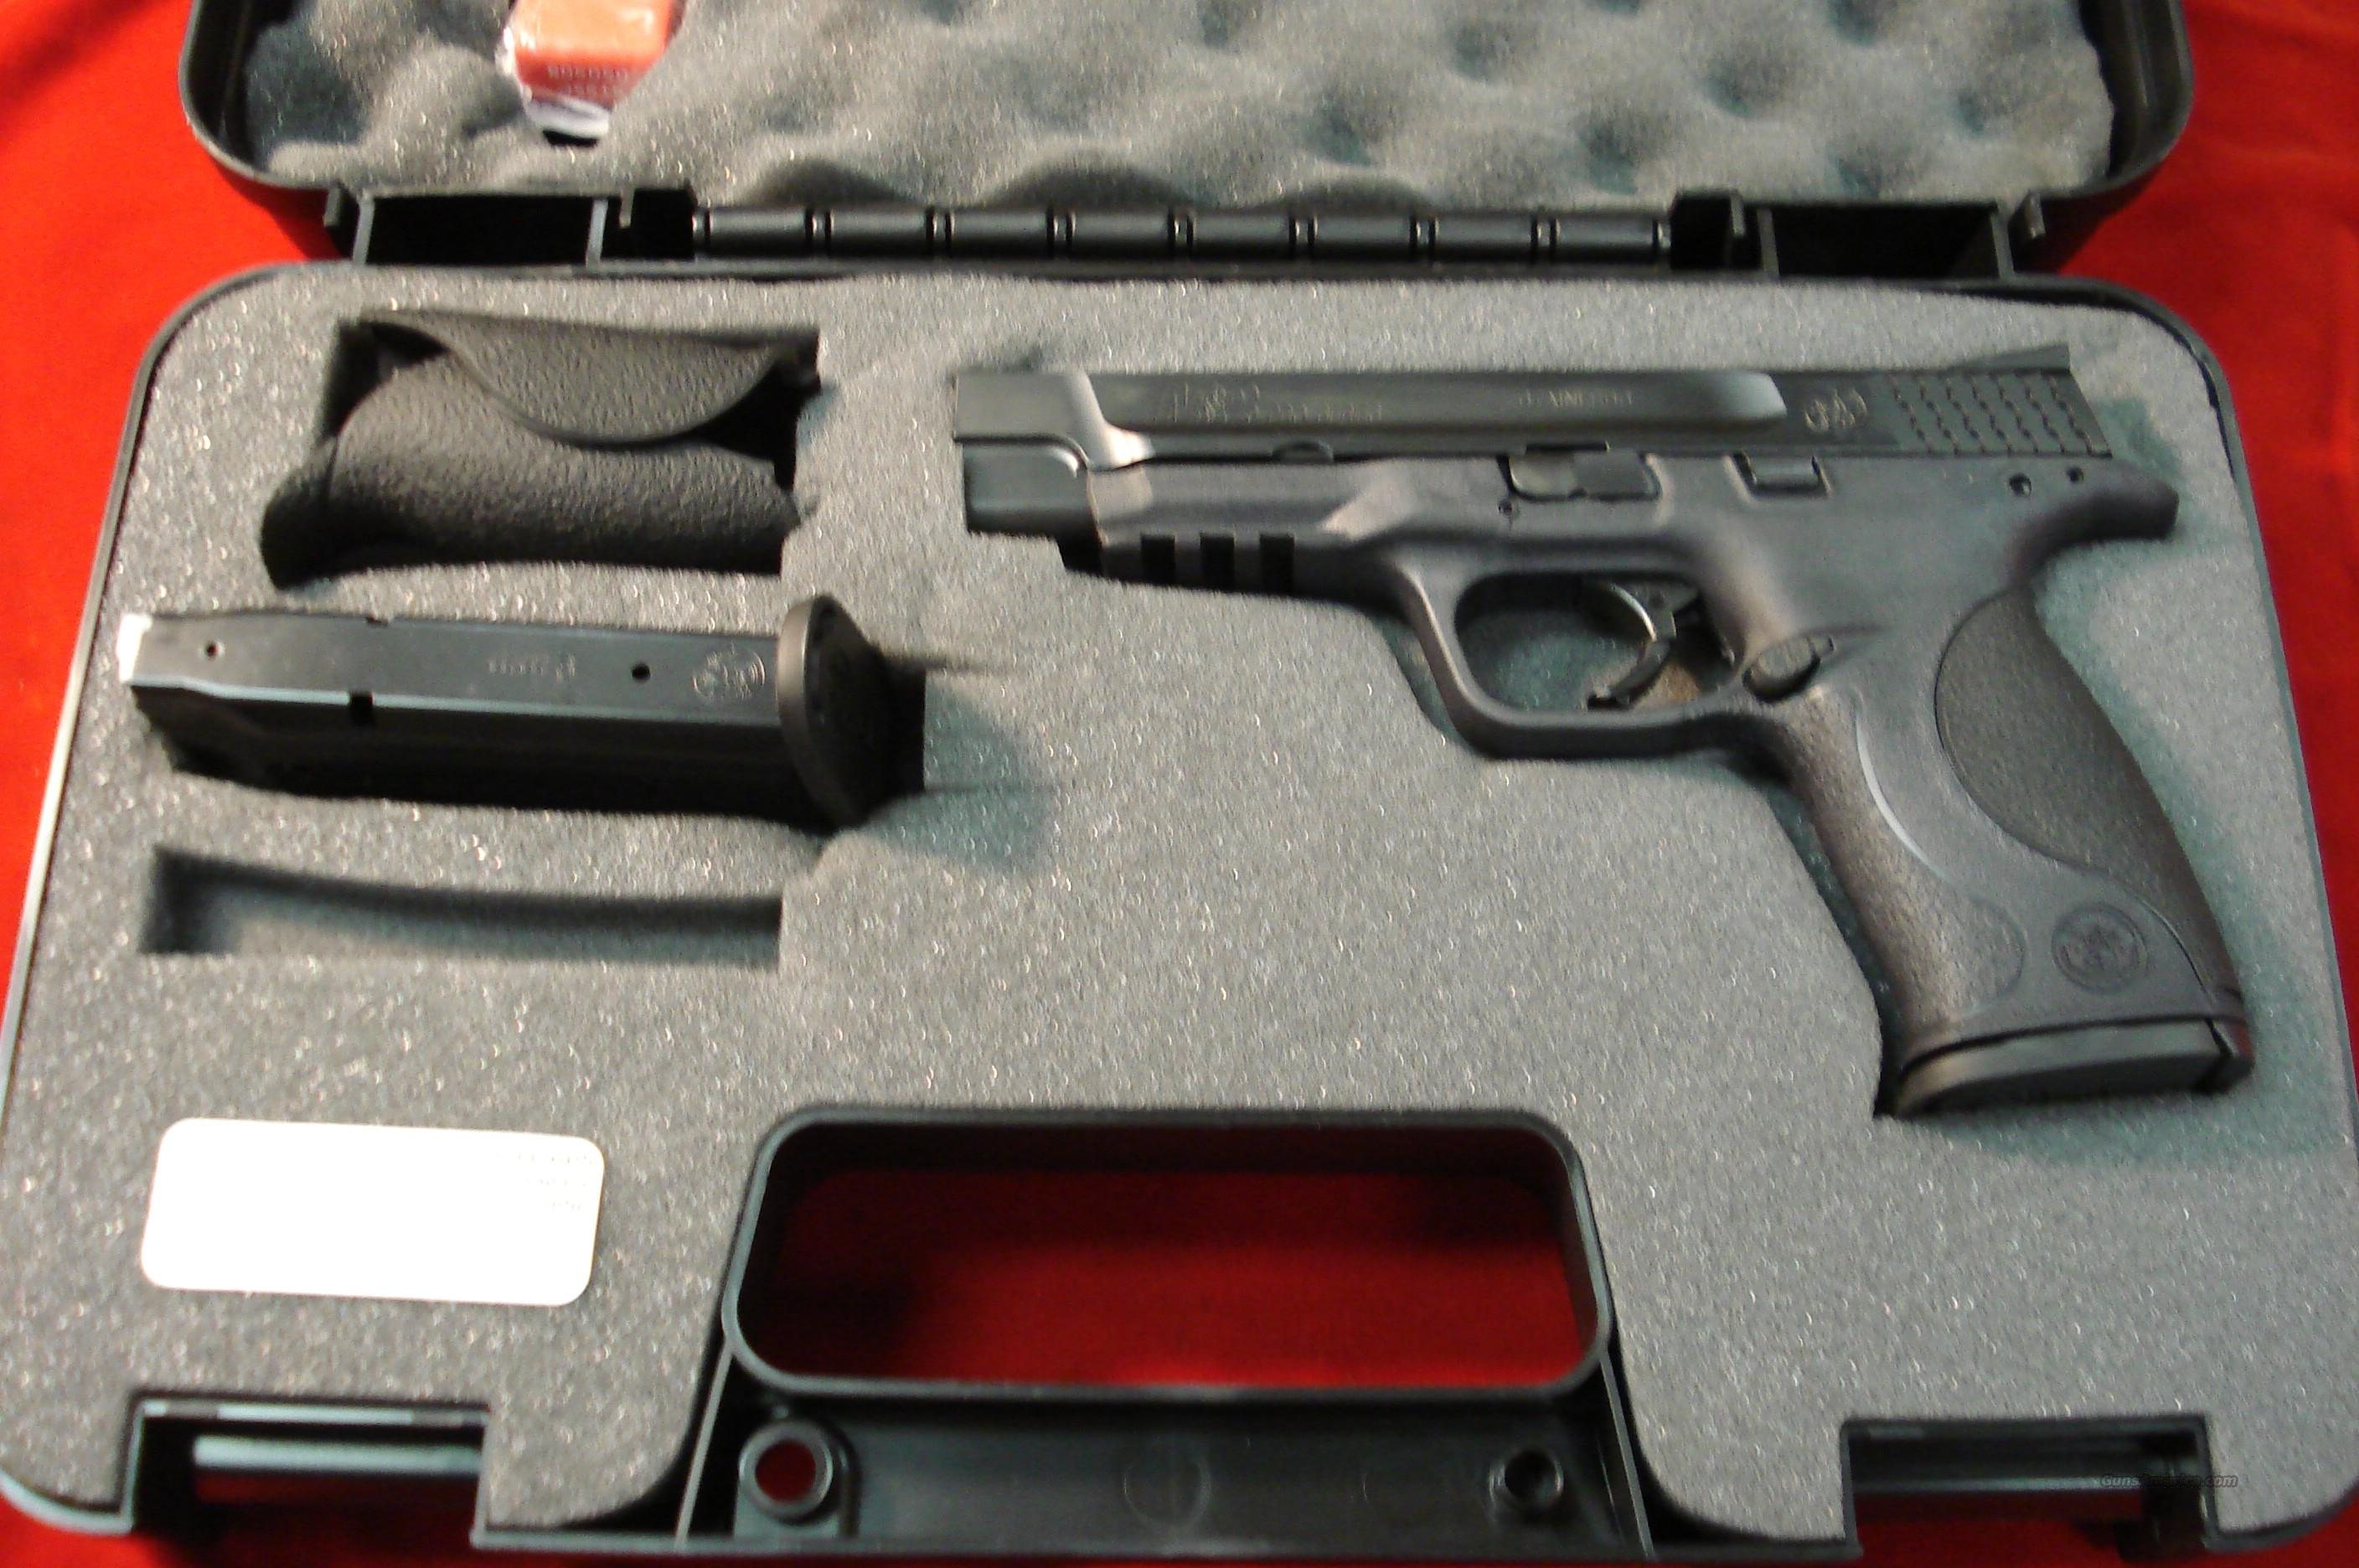 SMITH AND WESSON M&P PRO SERIES 9MM HIGH/CAP    Guns > Pistols > Smith & Wesson Pistols - Autos > Polymer Frame